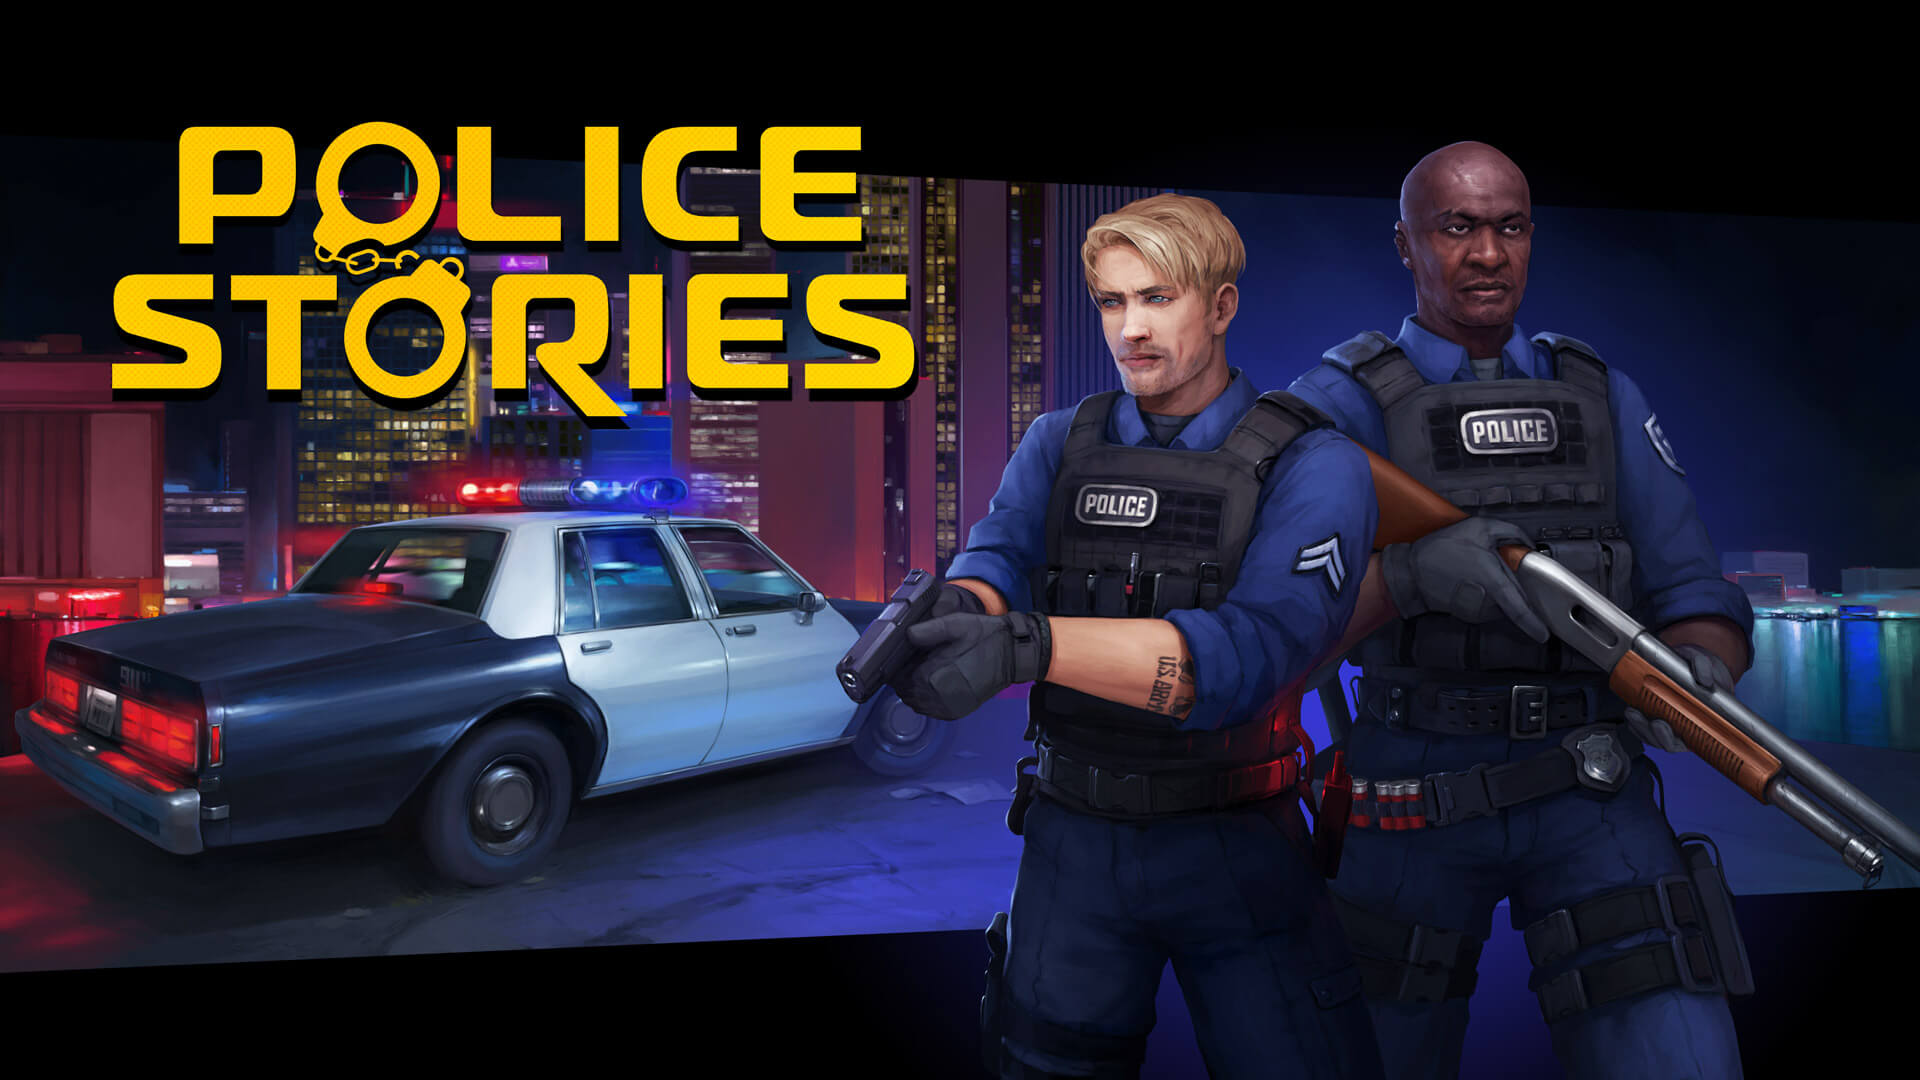 Police Stories PS4 Free Download